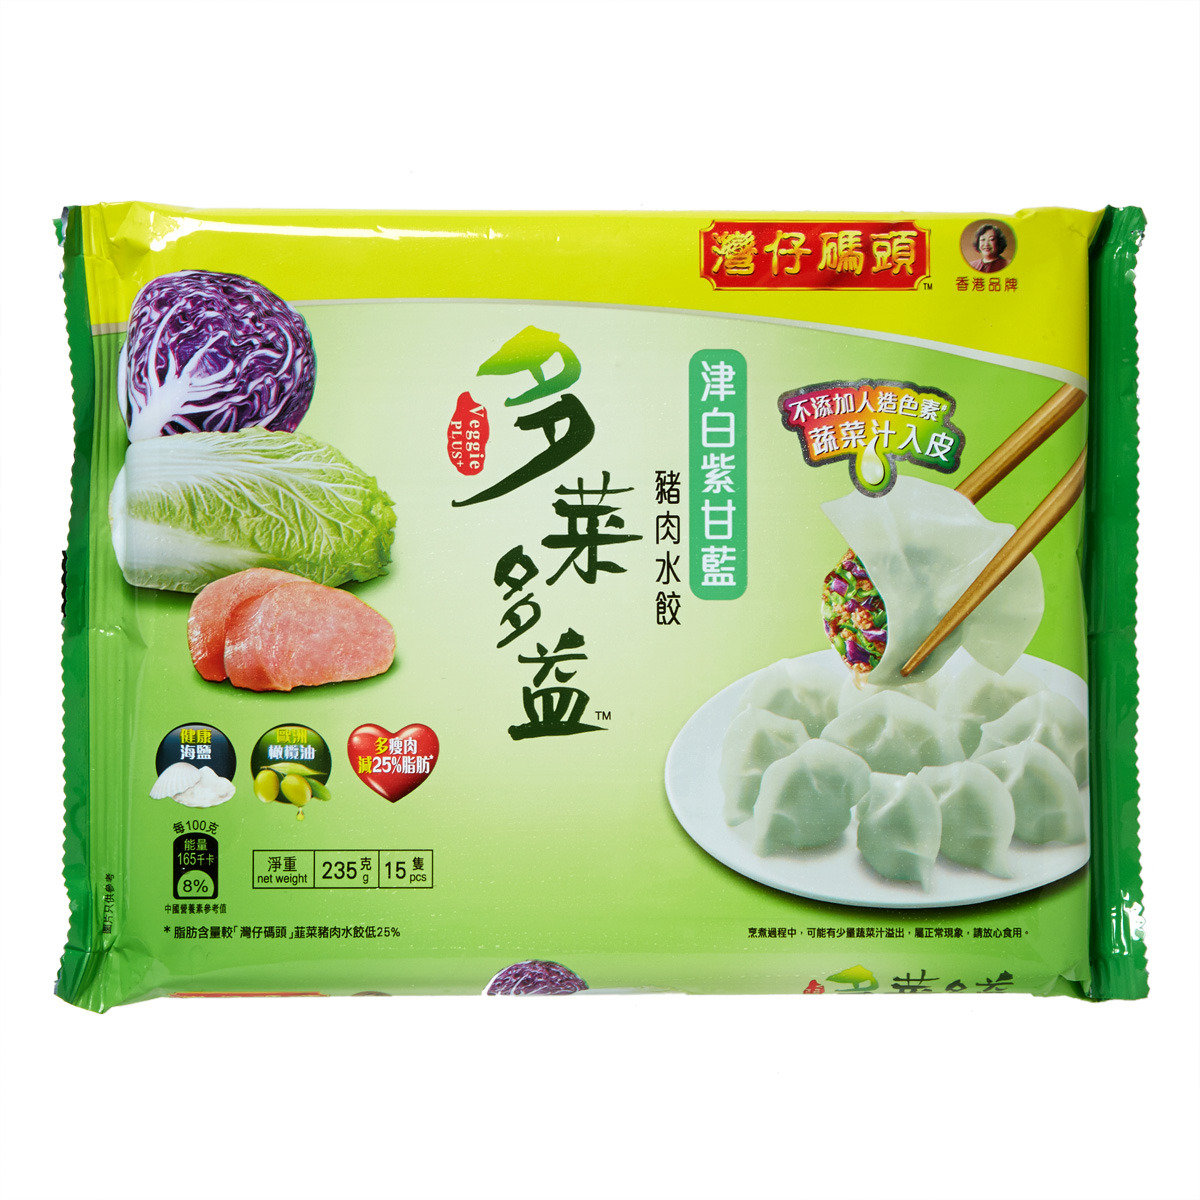 Chinese Cabbage, Purple Cabbage and Pork Dumpling 15'S(Frozen)